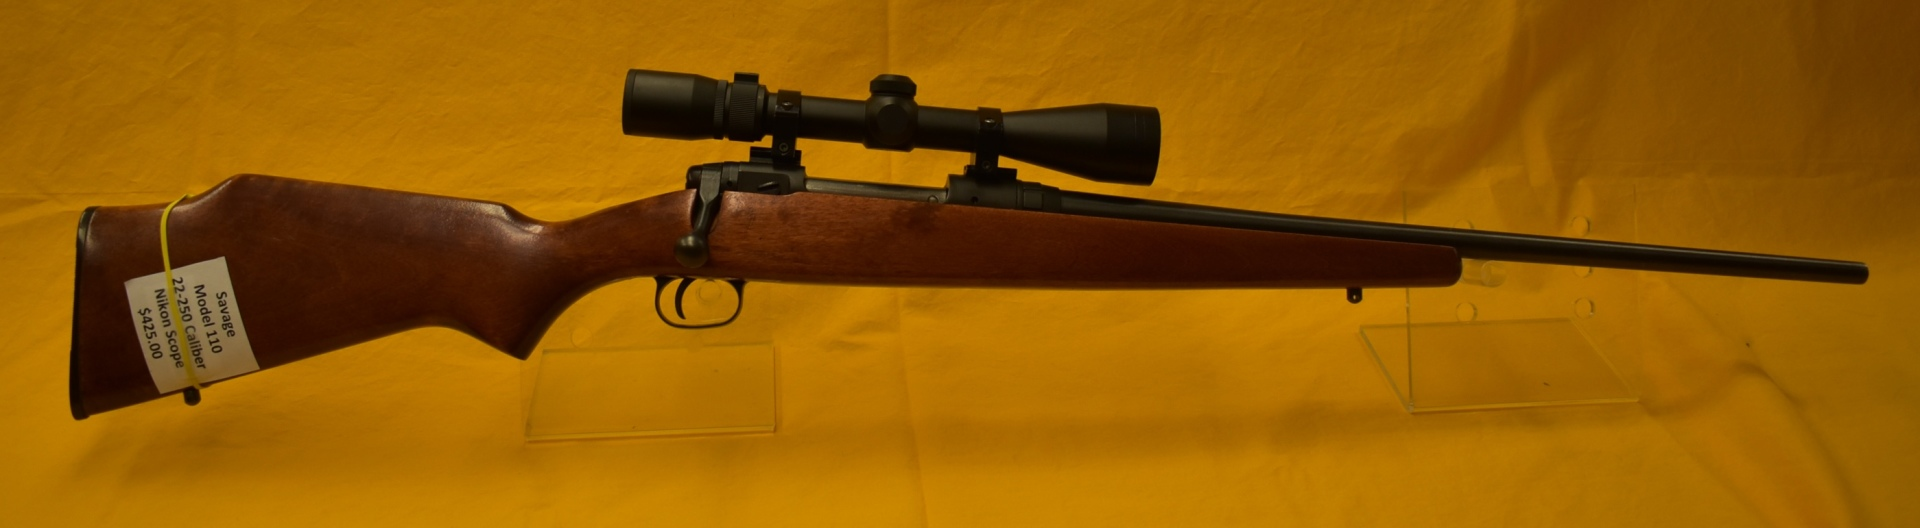 Savage 22-250 with Nikon Scope